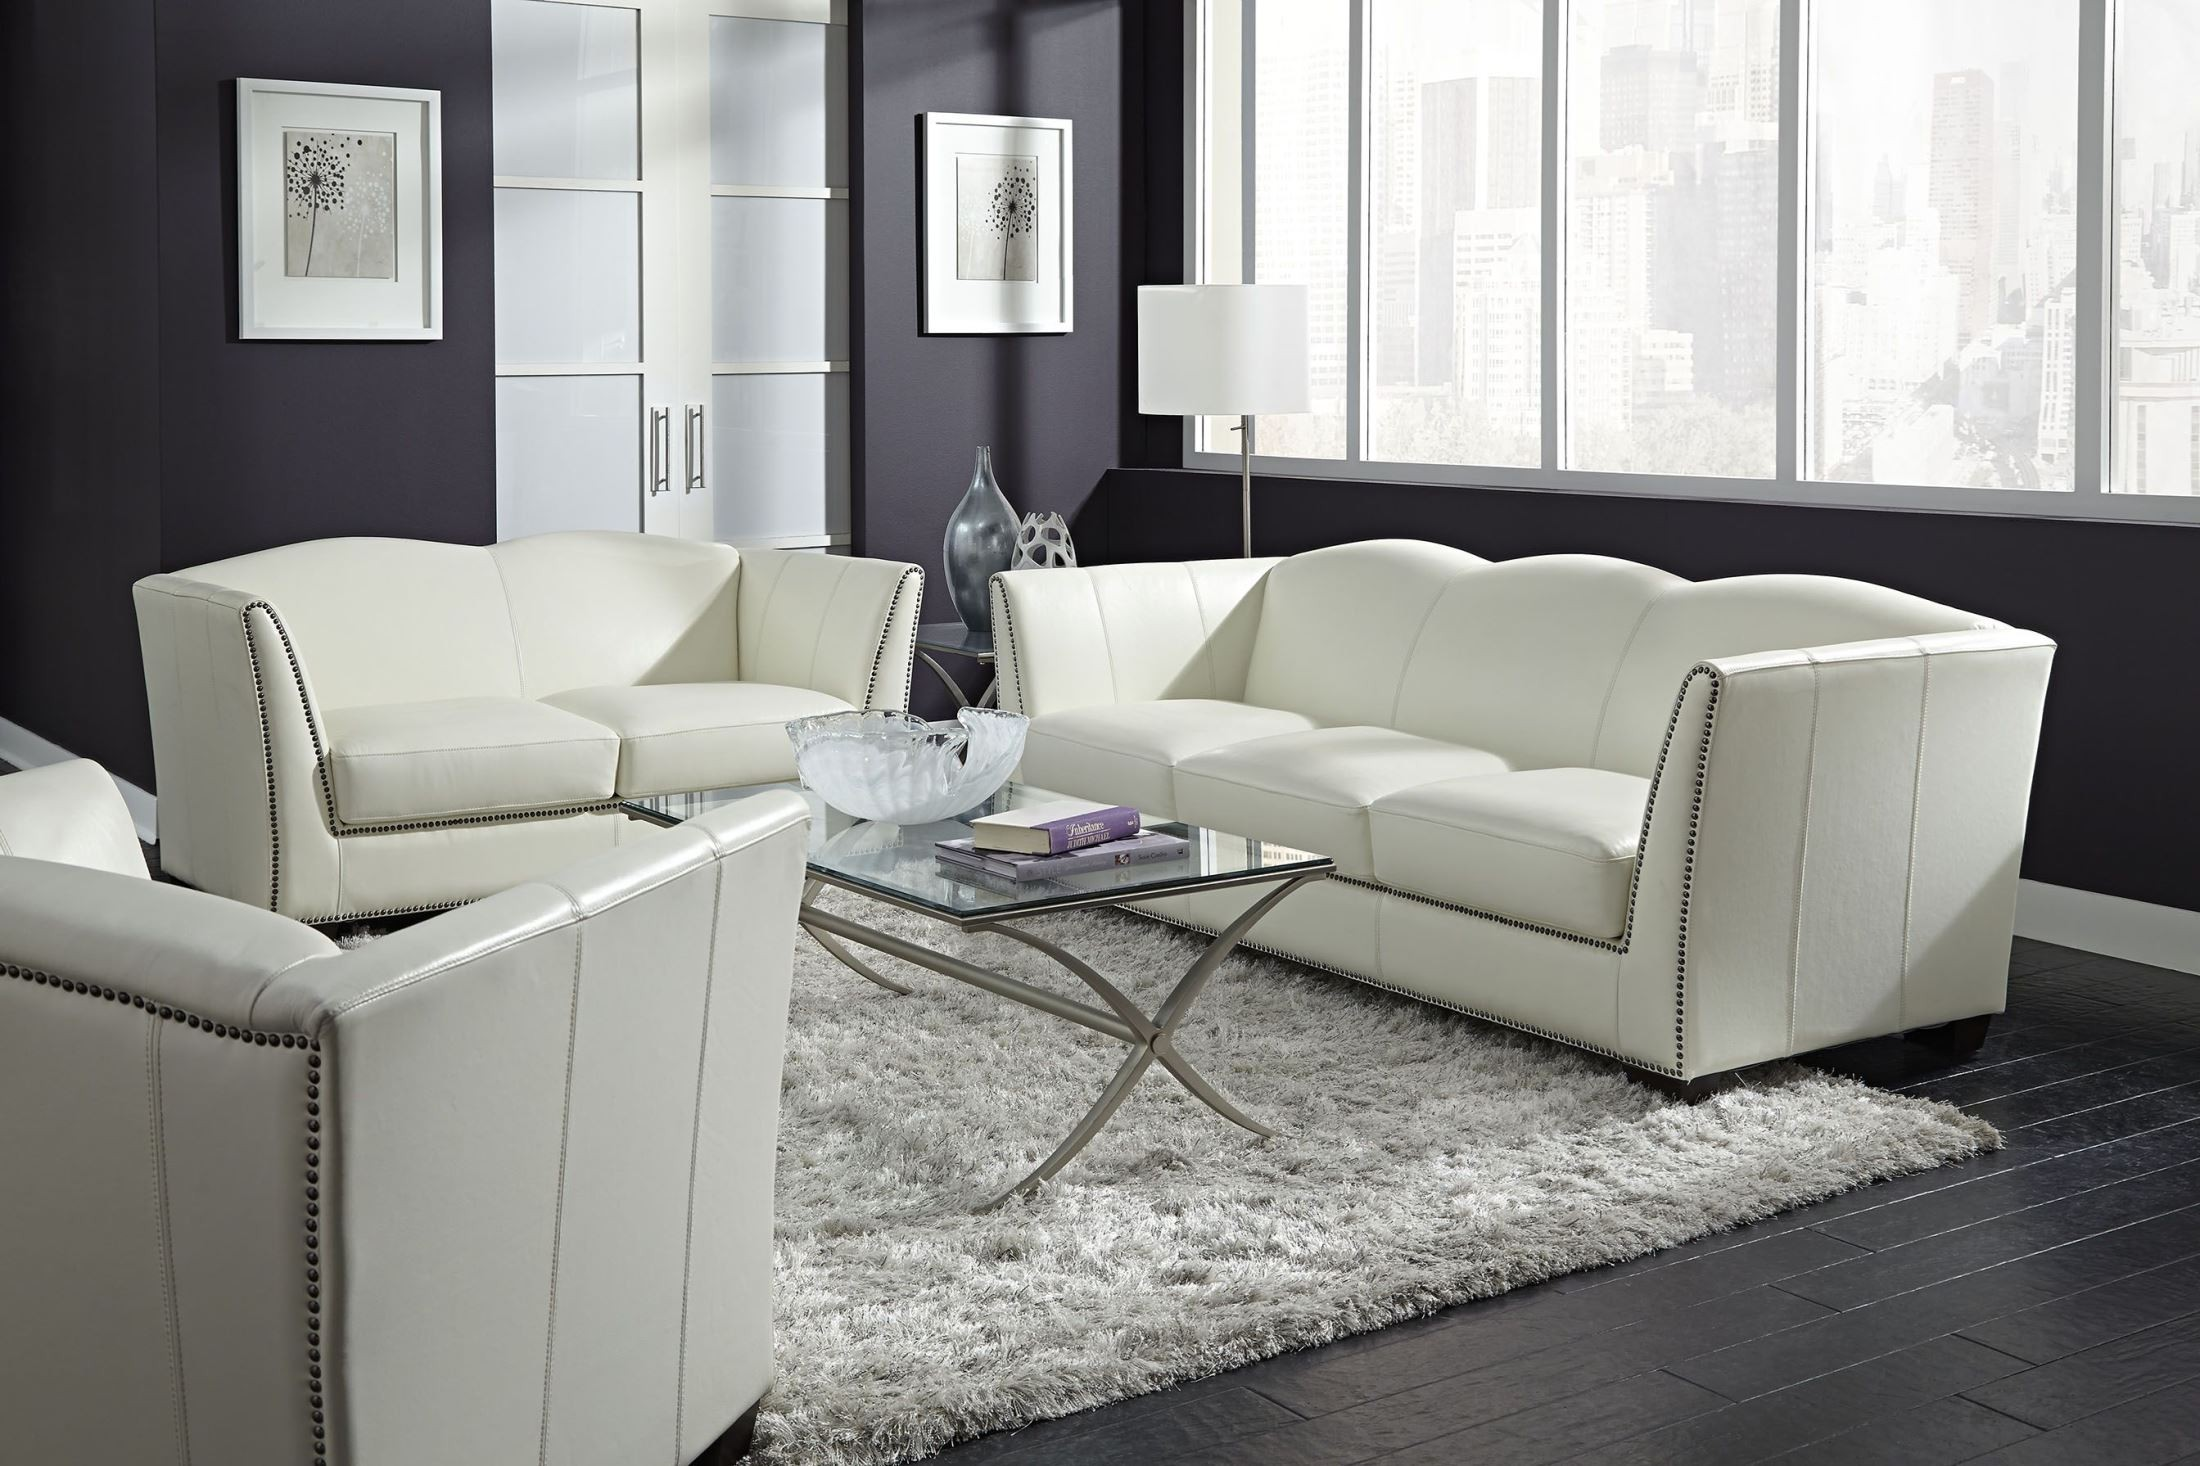 Manlyn White Leather Living Room Set From Lazzaro (WH-1327